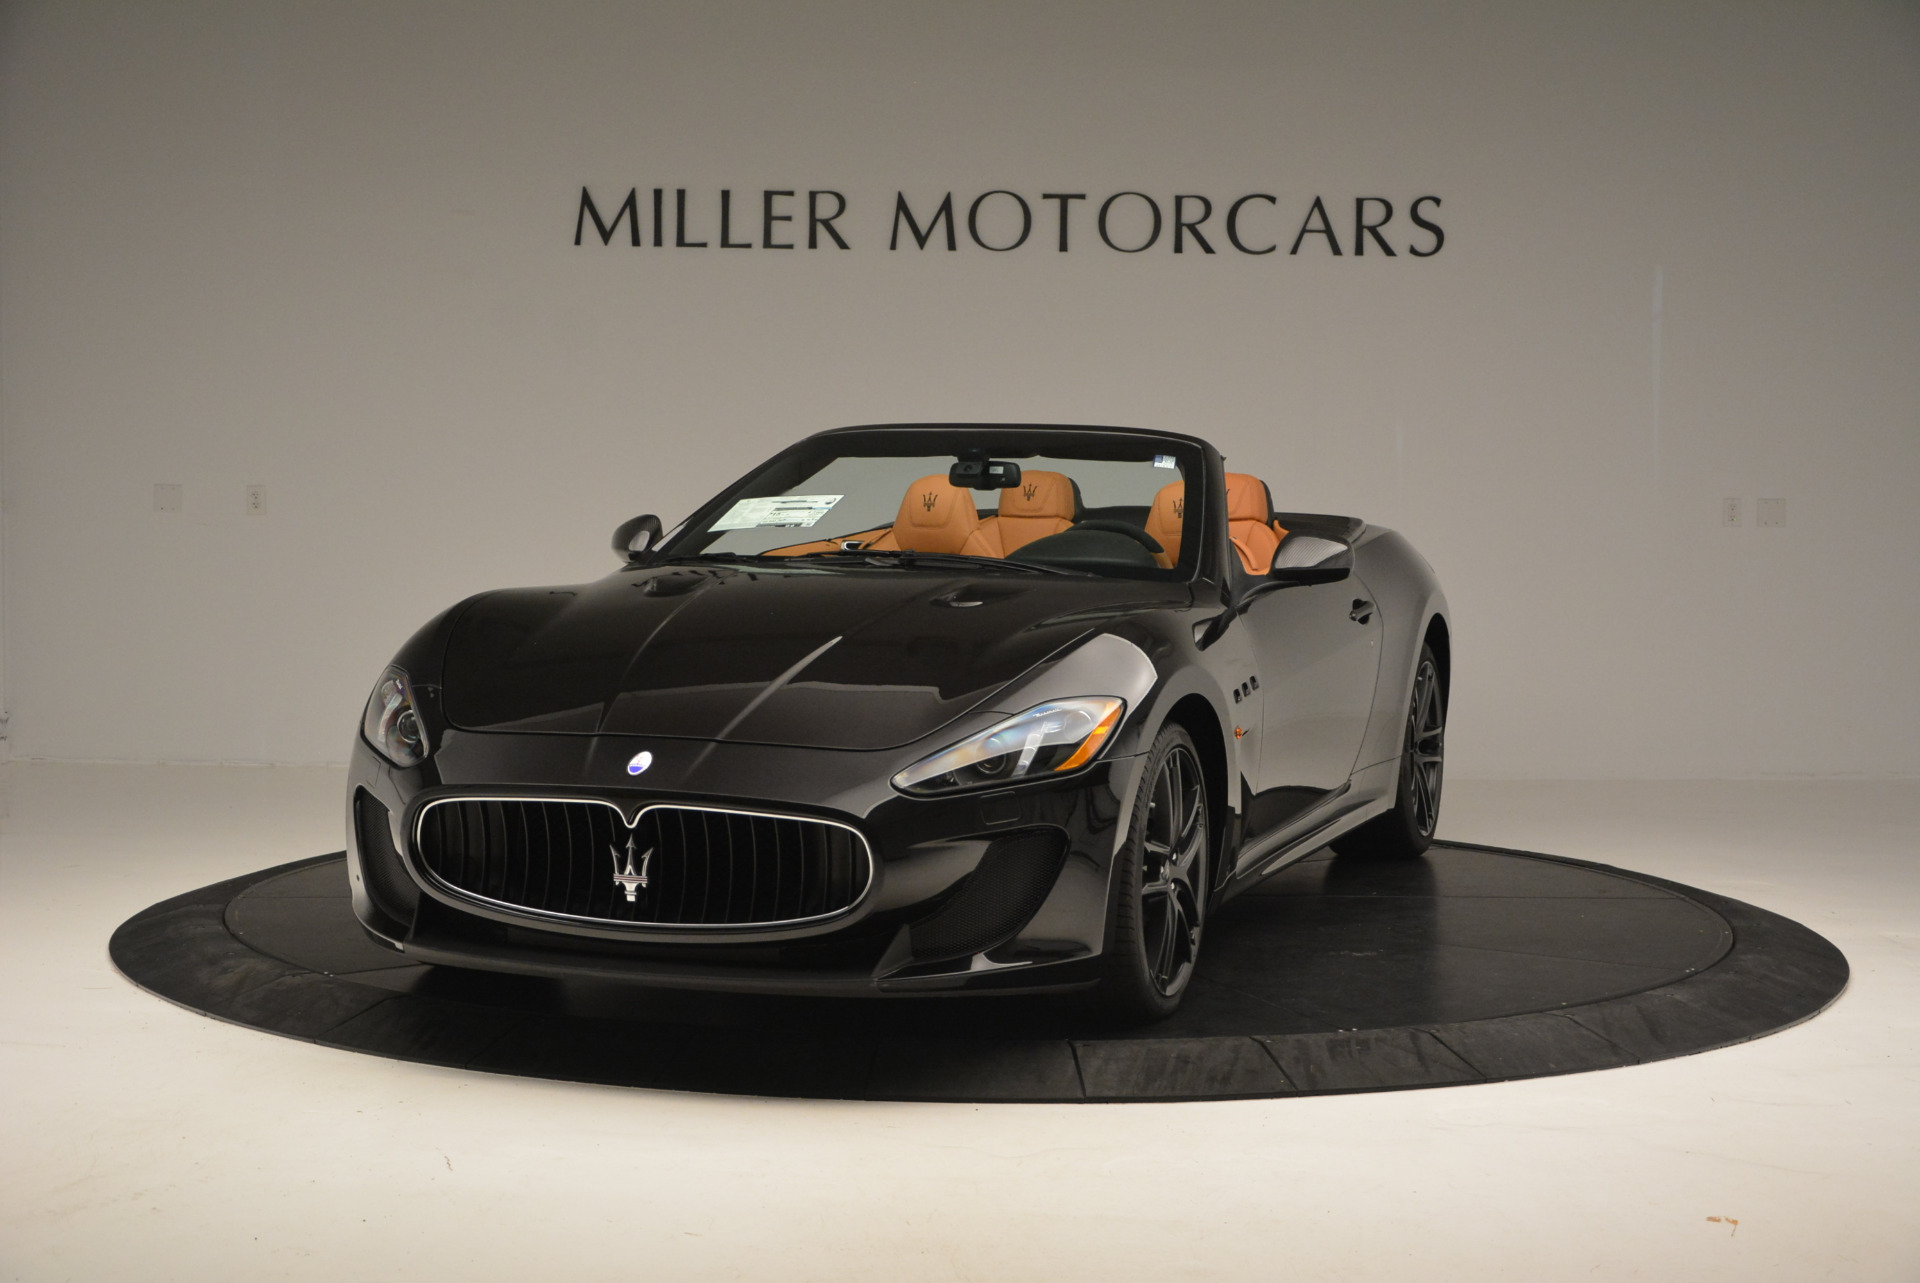 New 2017 Maserati GranTurismo MC CONVERTIBLE for sale Sold at Bugatti of Greenwich in Greenwich CT 06830 1